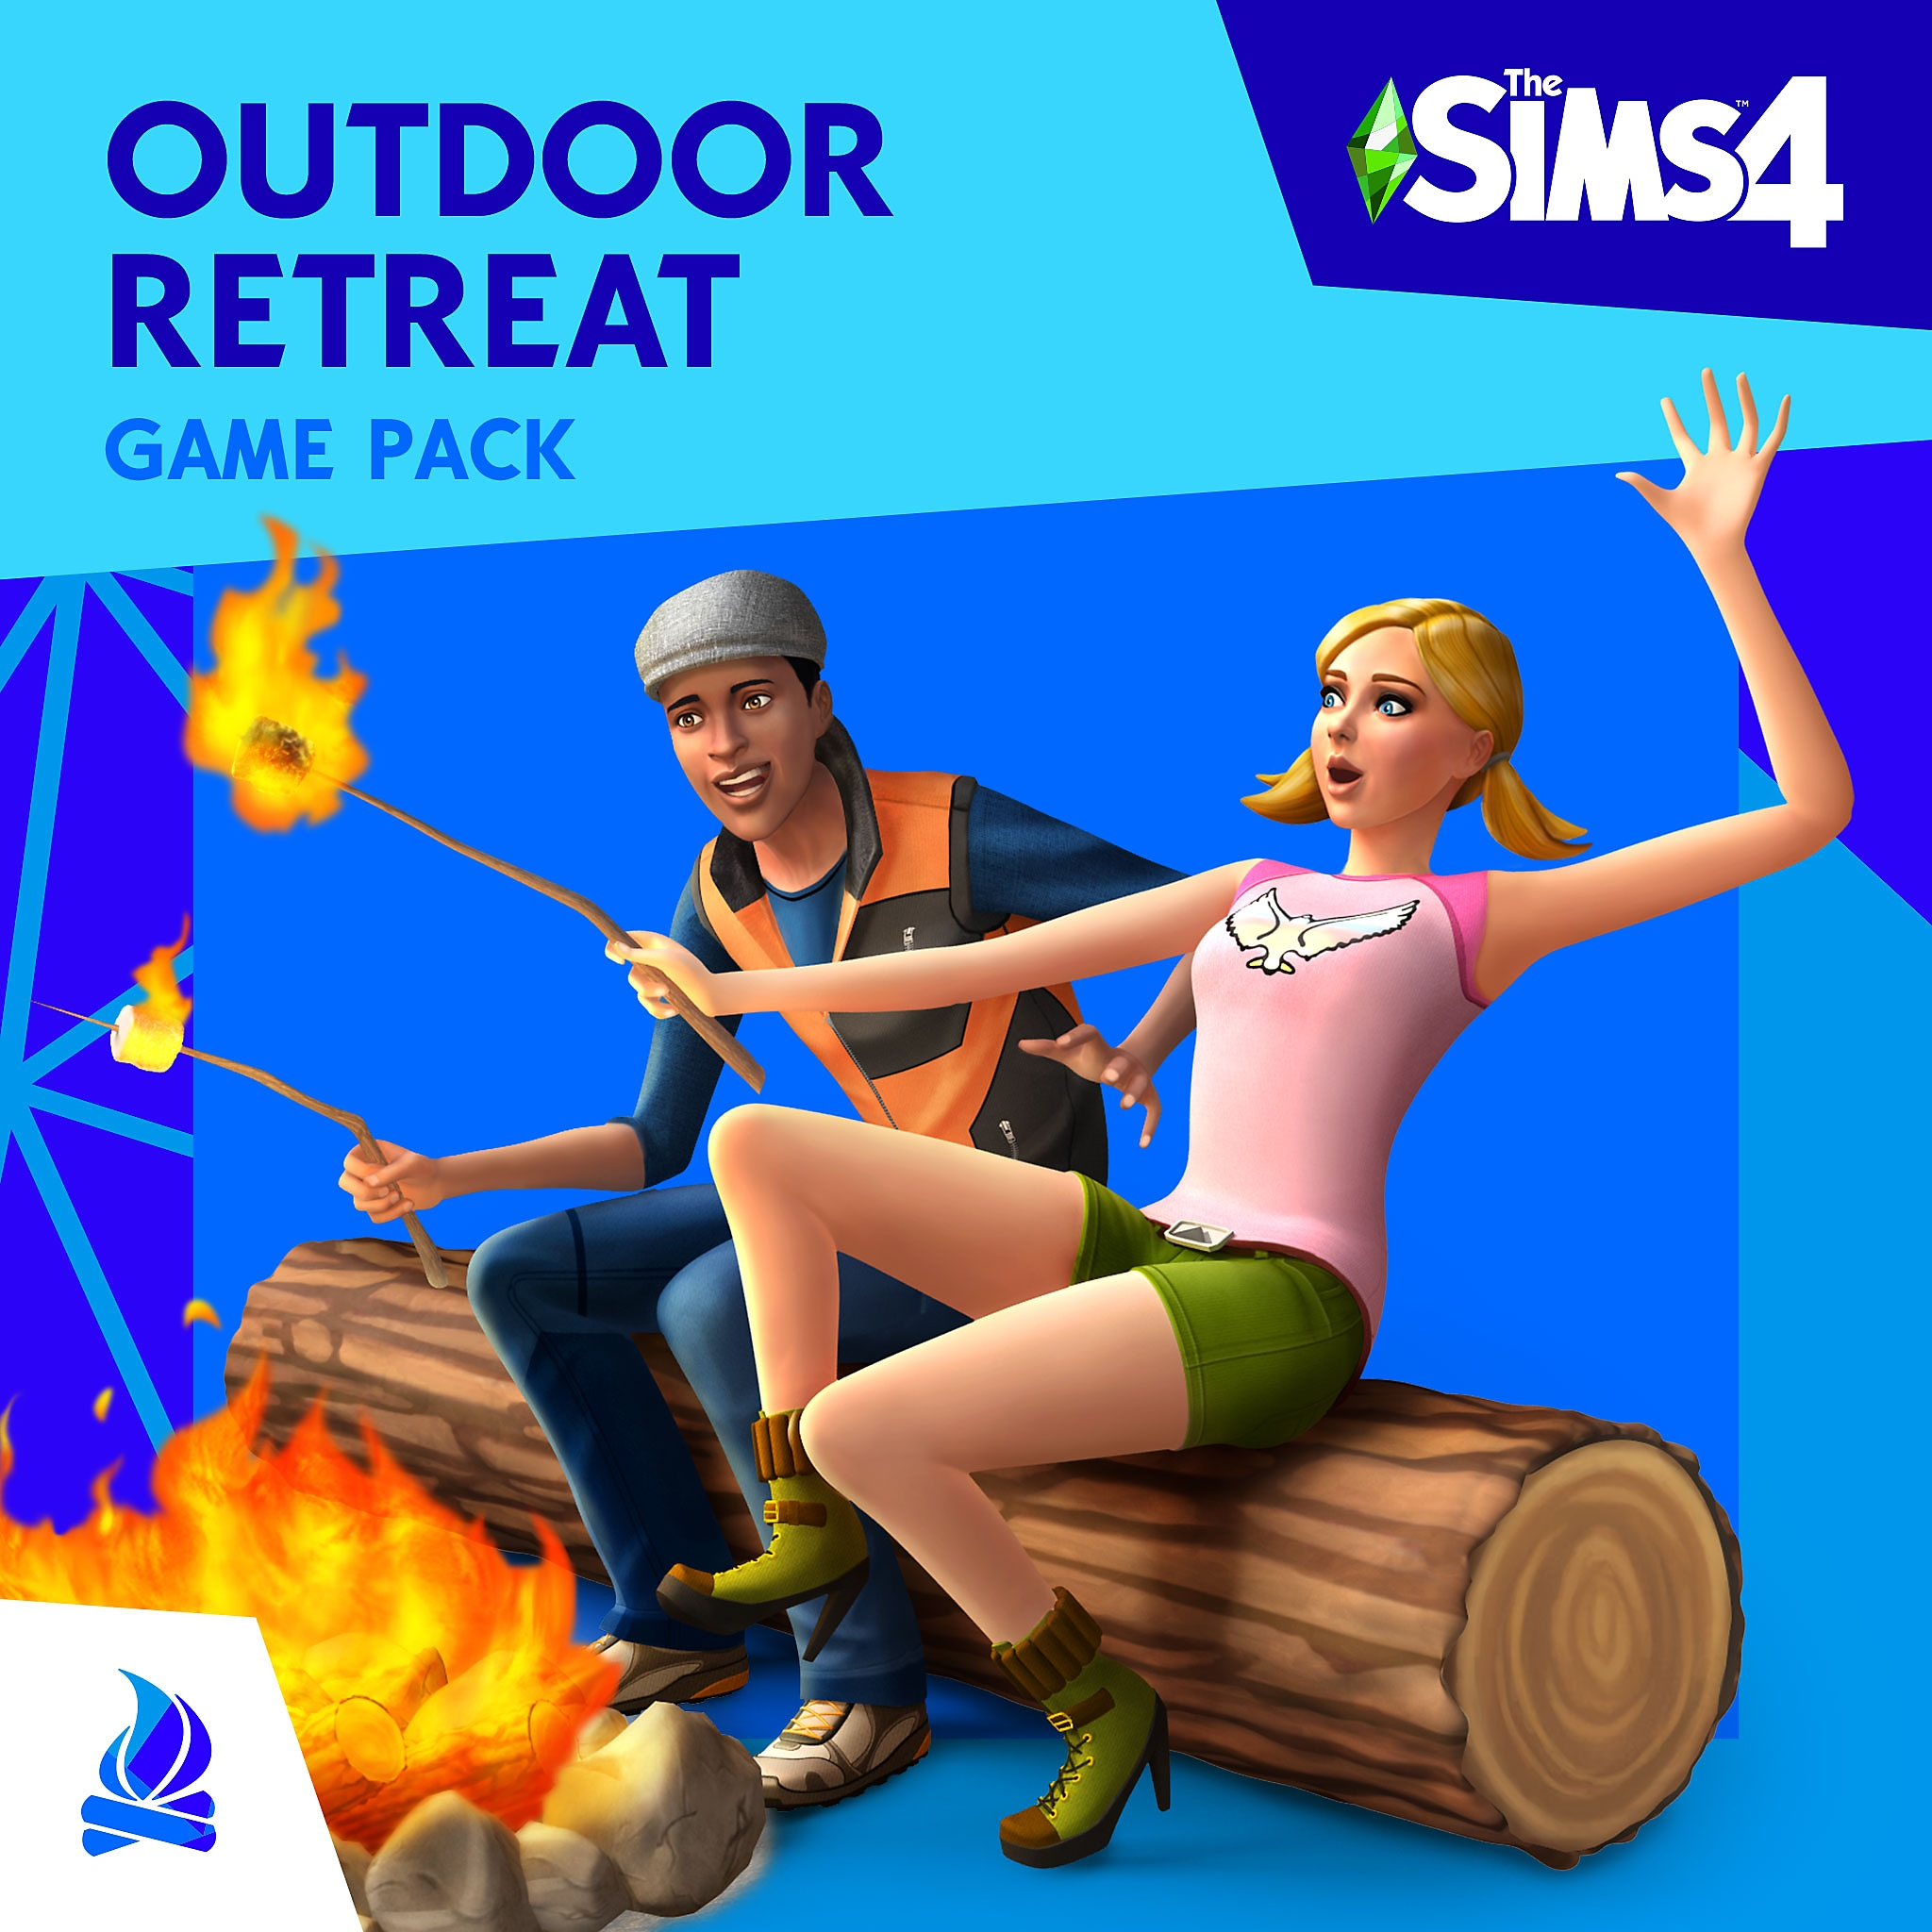 Outdoor Retreat Game Pack